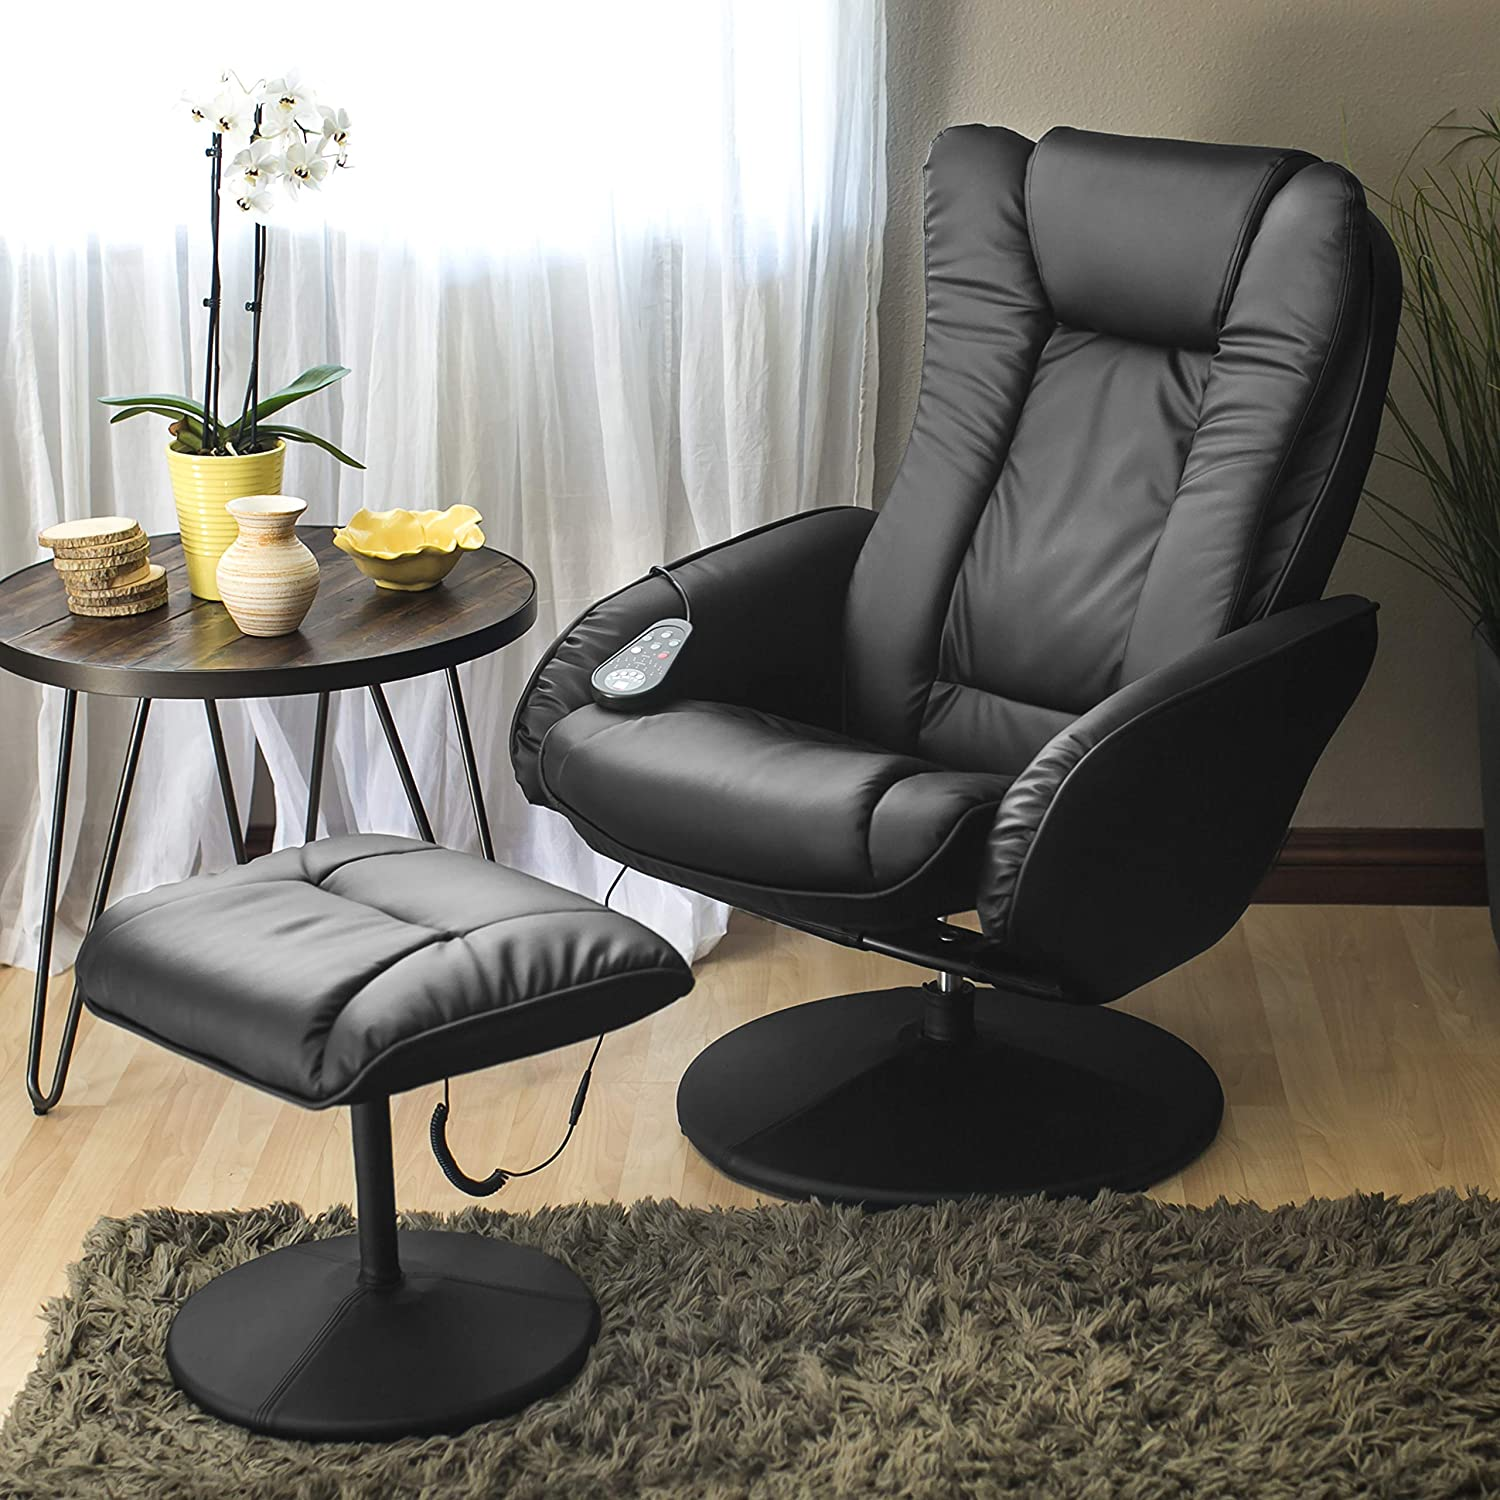 Best Choice Products Faux Leather Massage Recliner Chair w Ottoman, Remote Control, 5 Heat and Massage Modes – Black